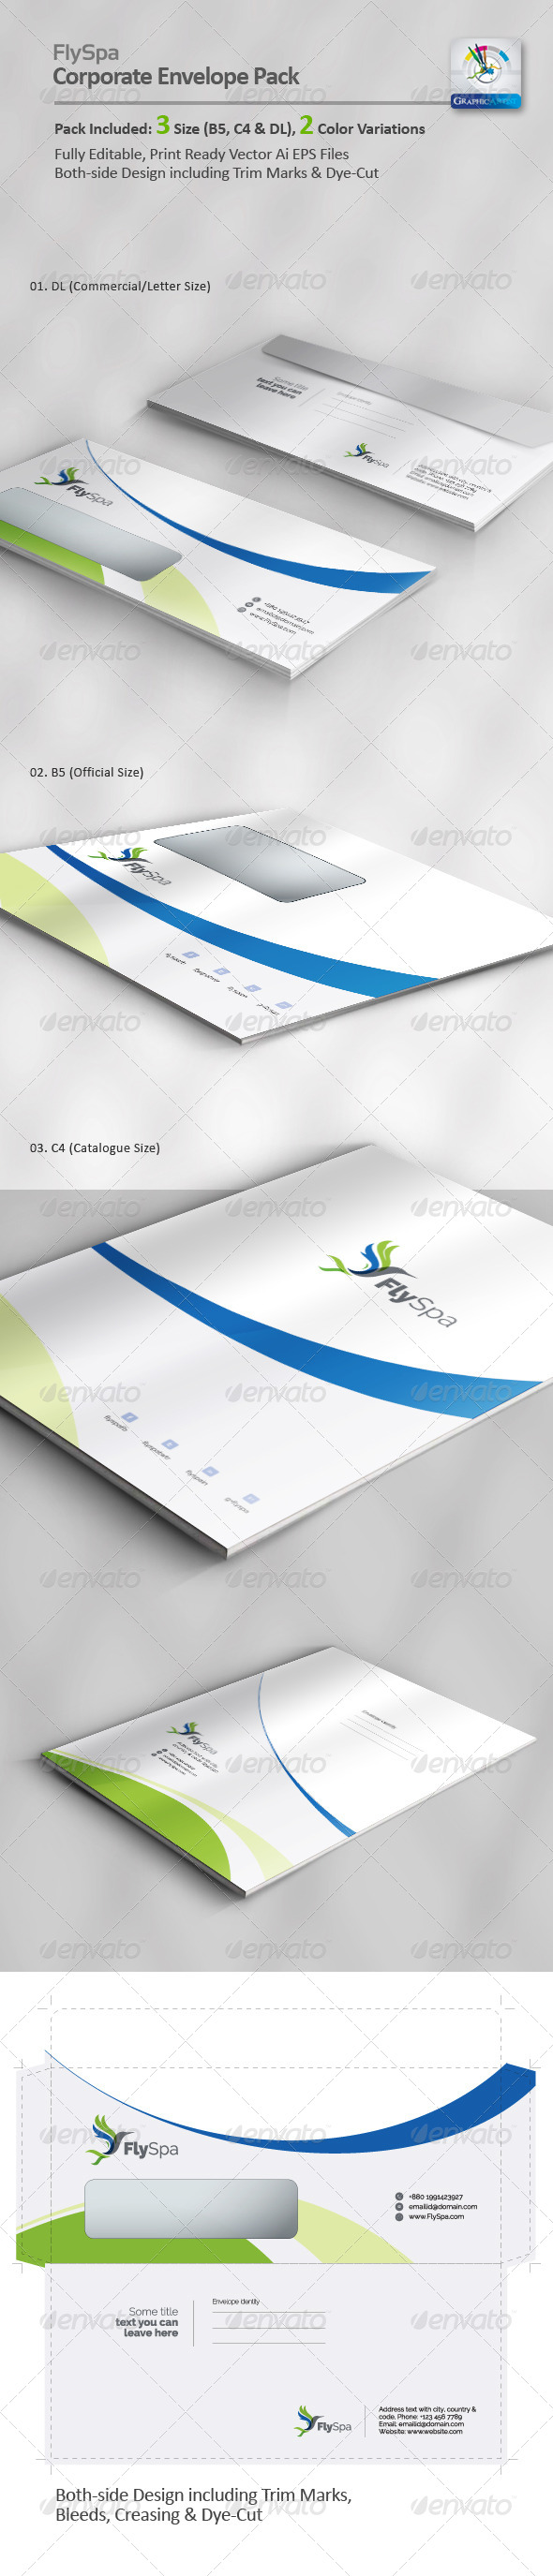 GraphicRiver FlySpa Corporate Envelope Pack 5678058